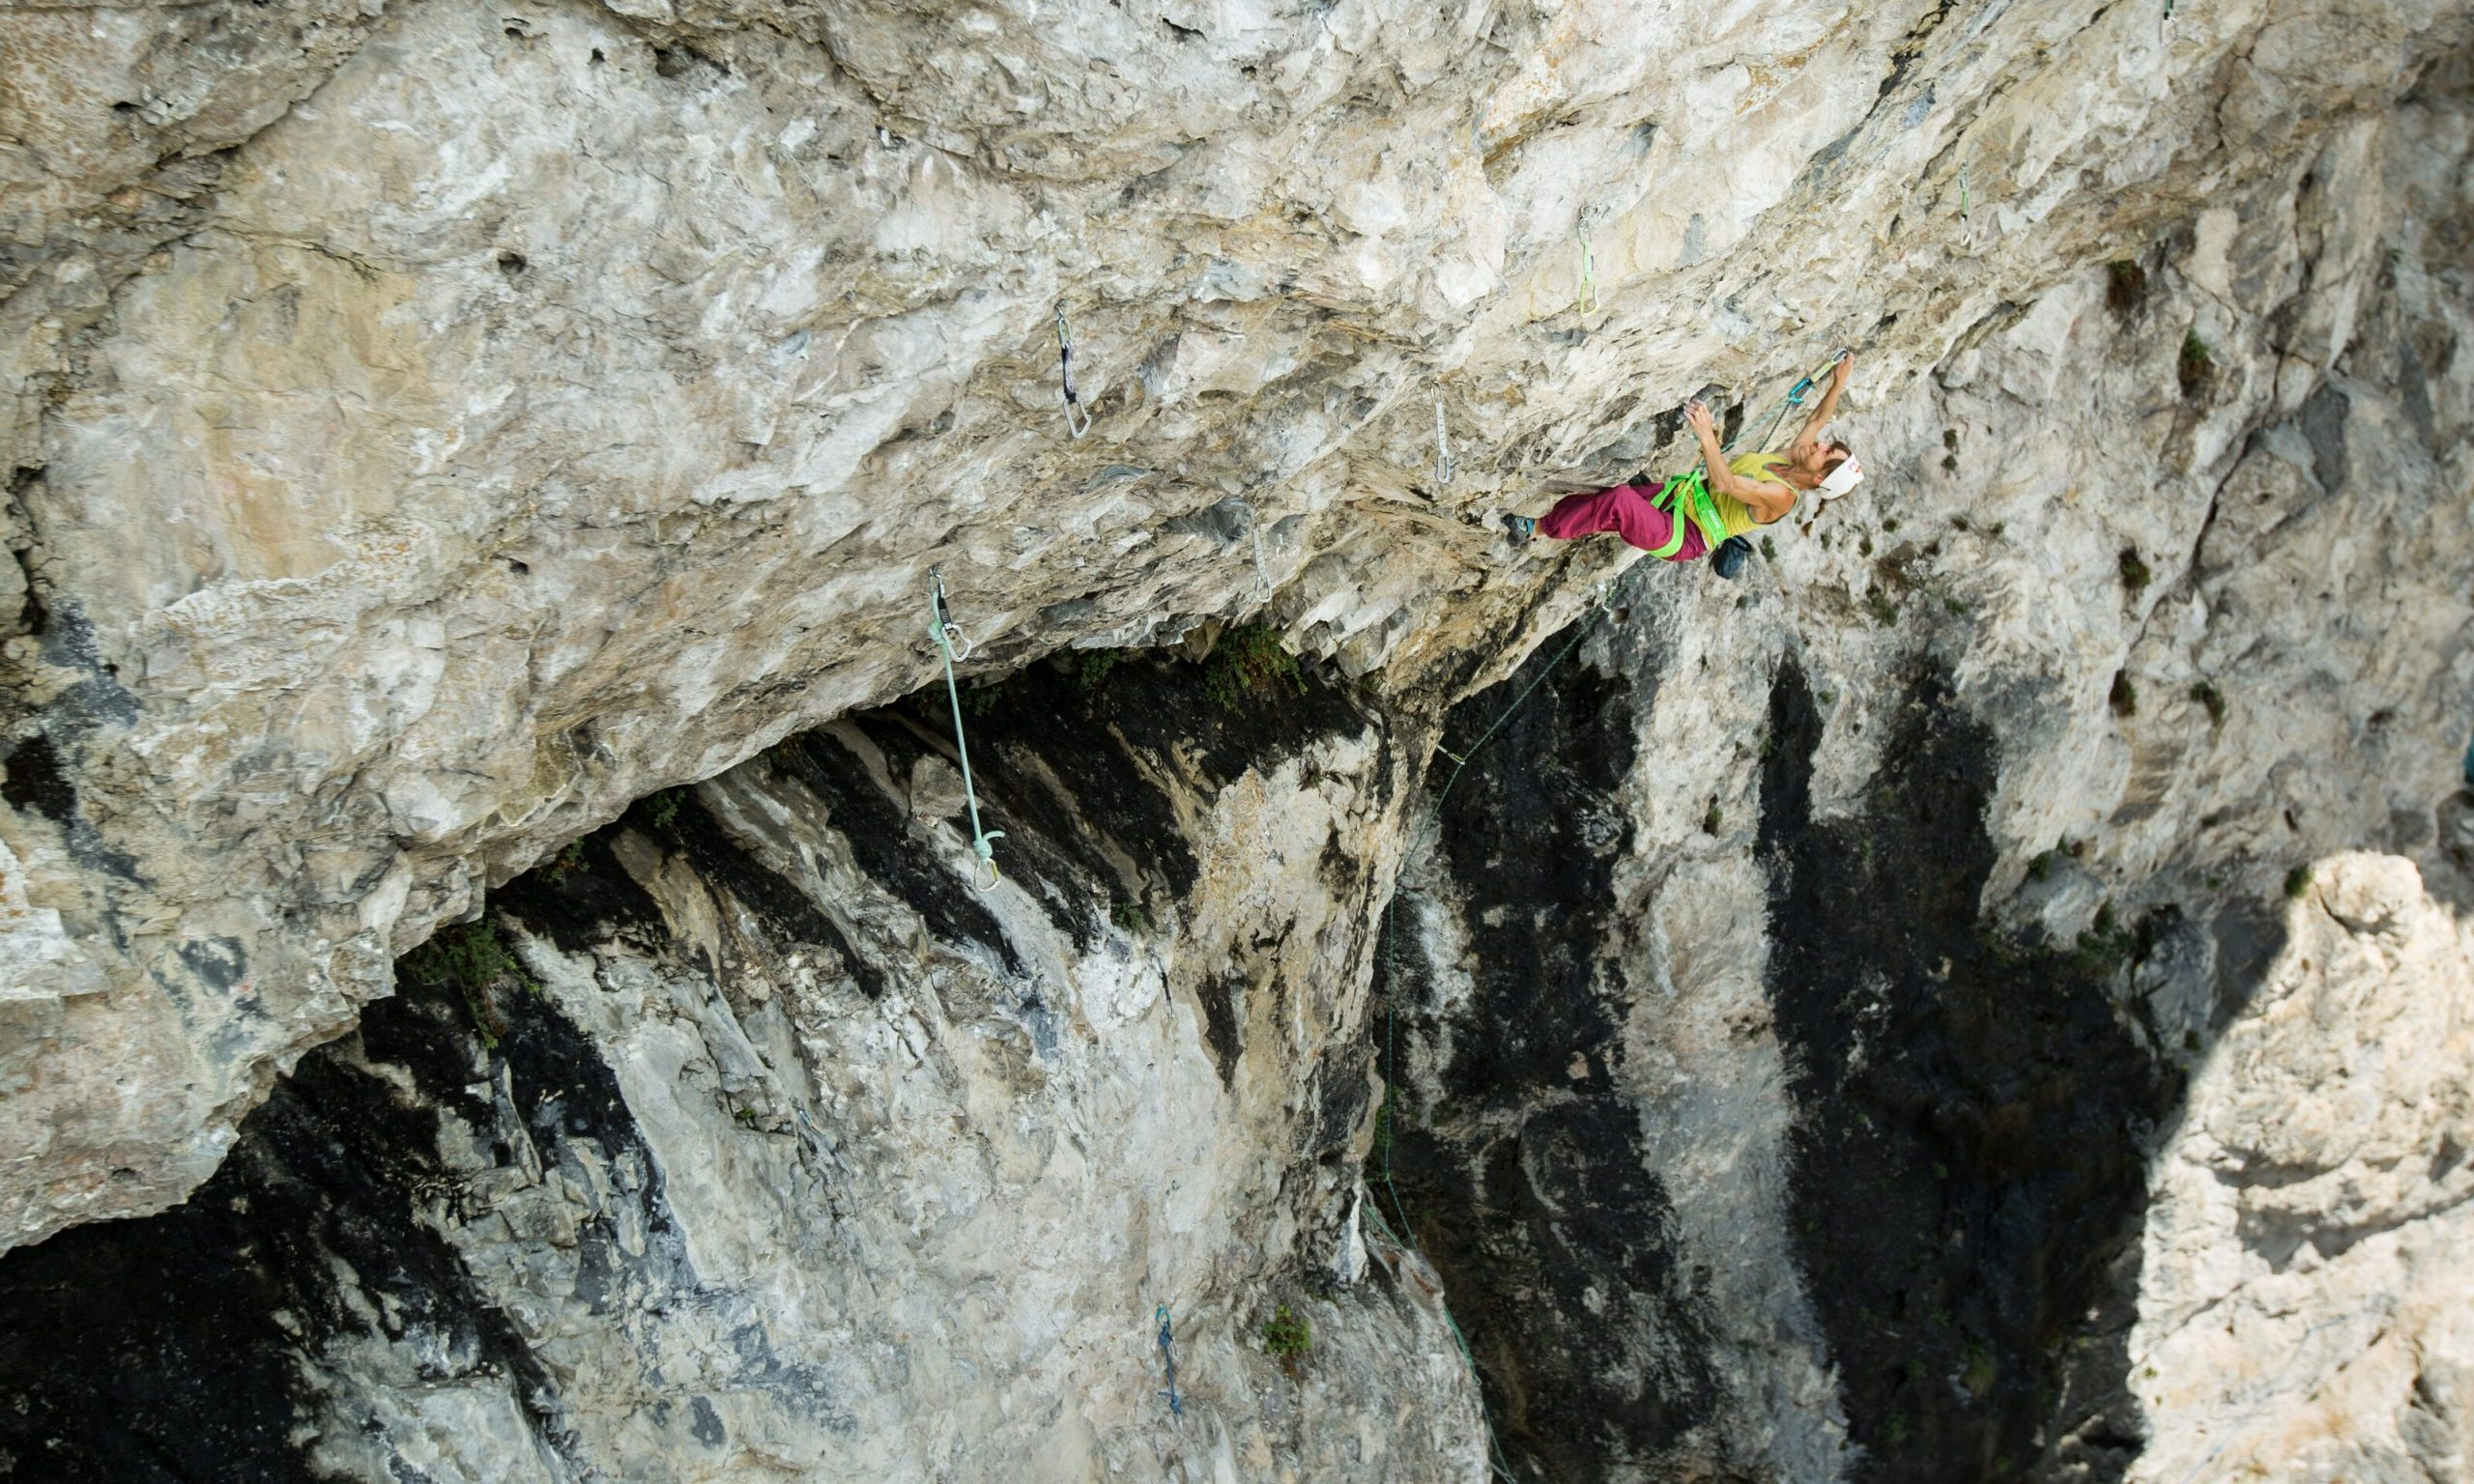 """Angela Eiter is seen climbing the """"Madame Ching"""" route in Tirol, Austria in August 2020. // Raphael P�ham / Red Bull Content Pool // SI202012150392 // Usage for editorial use only //"""